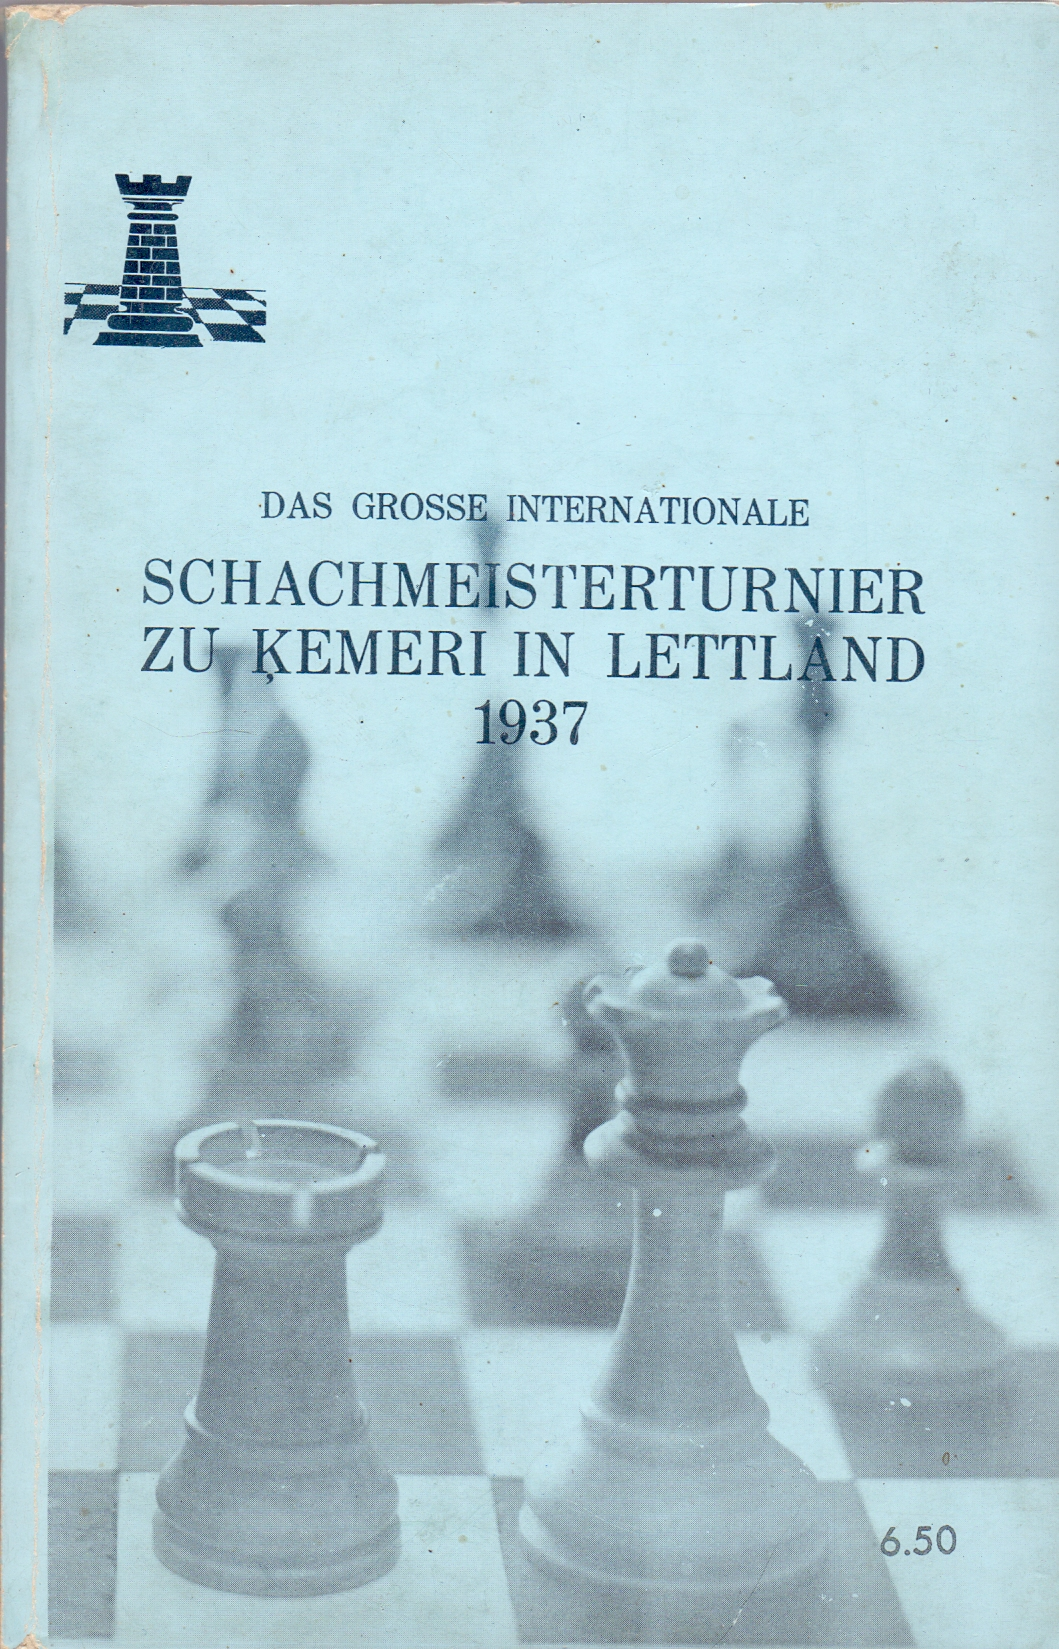 DAS GROSSE INTERNATIONALE SCHACHMEISSTERTURNIER ZU KEMERI IN LETTLAND 1937 (Репринтное Американское издание)